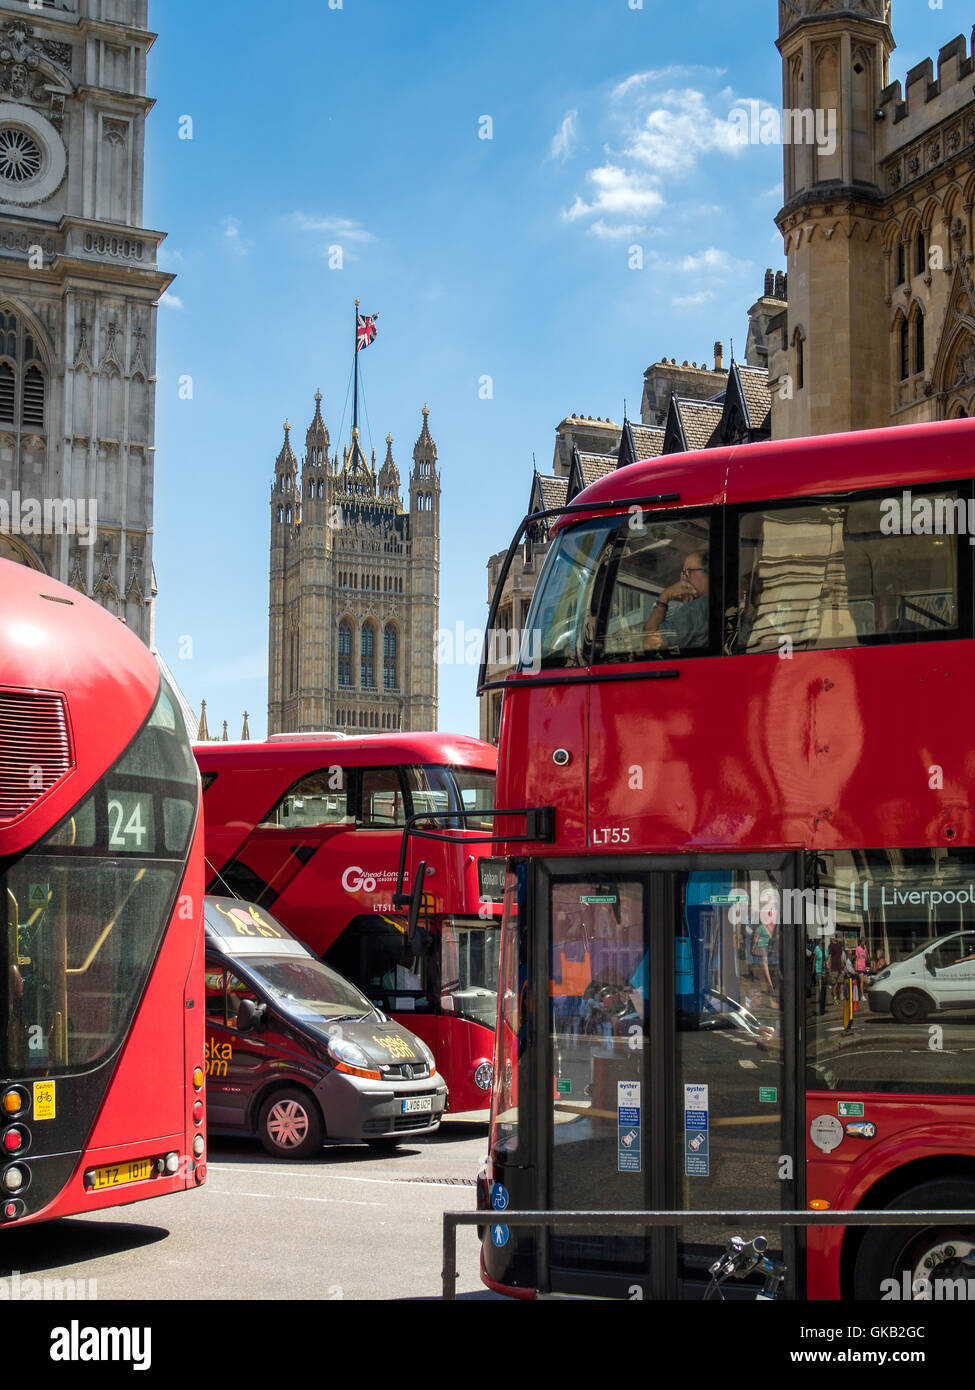 London Buses next to Westminster Abbey - Stock Image